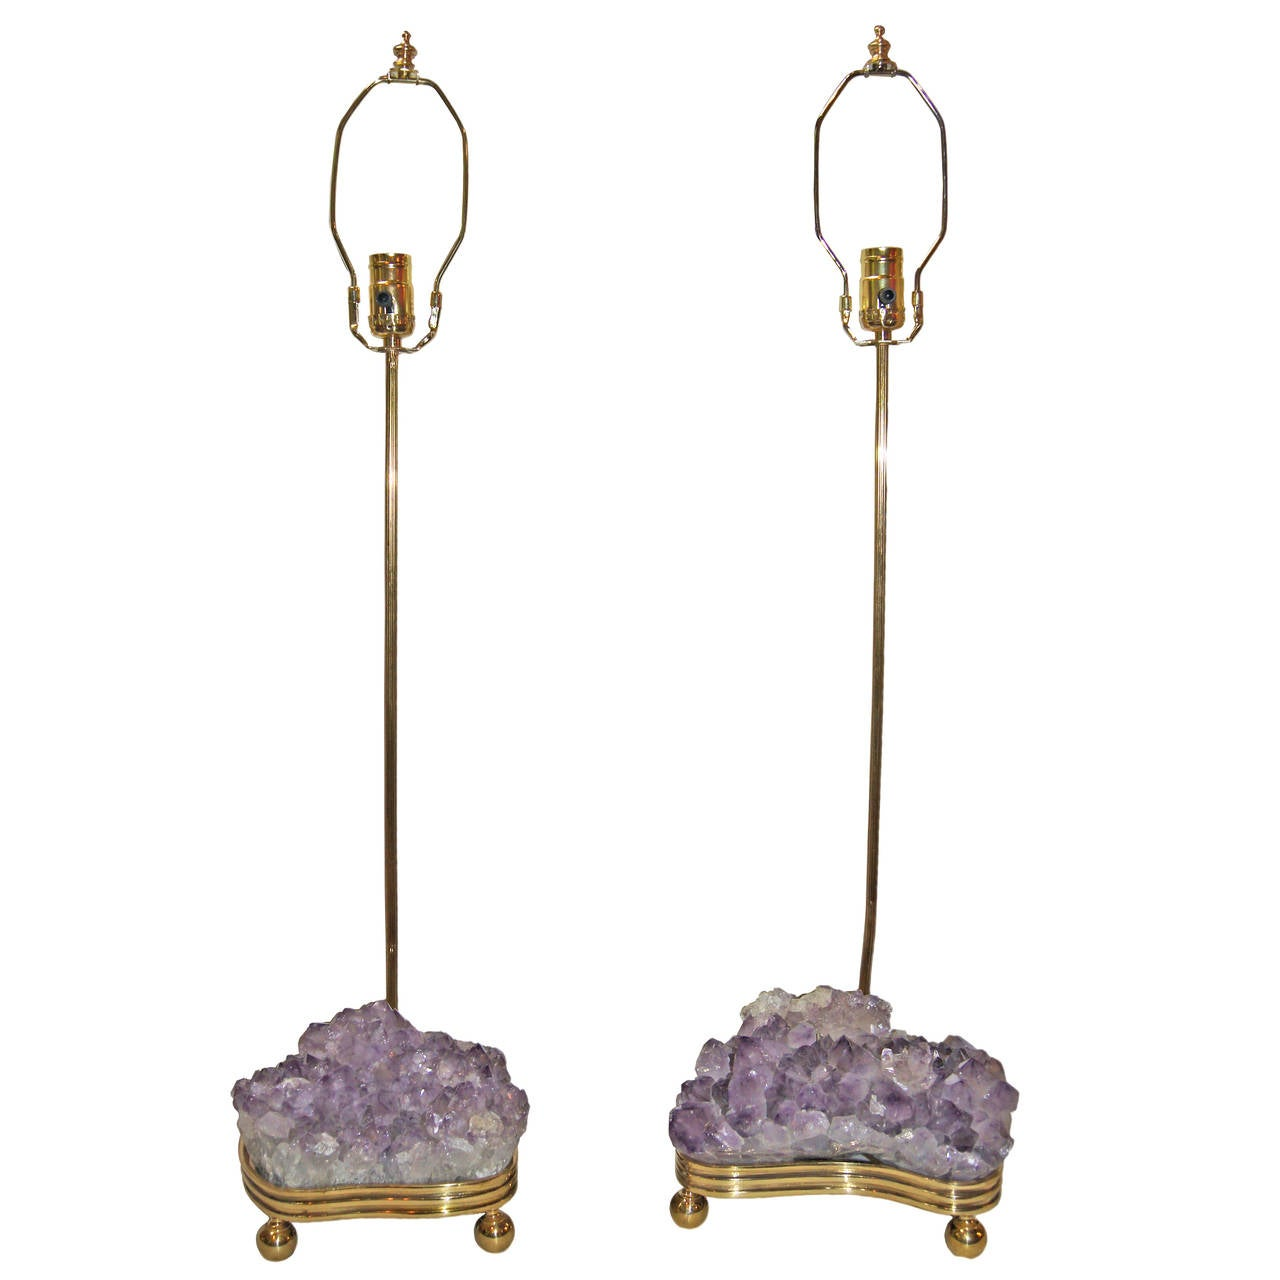 Pair Of Amethyst Table Lamps For Sale At 1stdibs